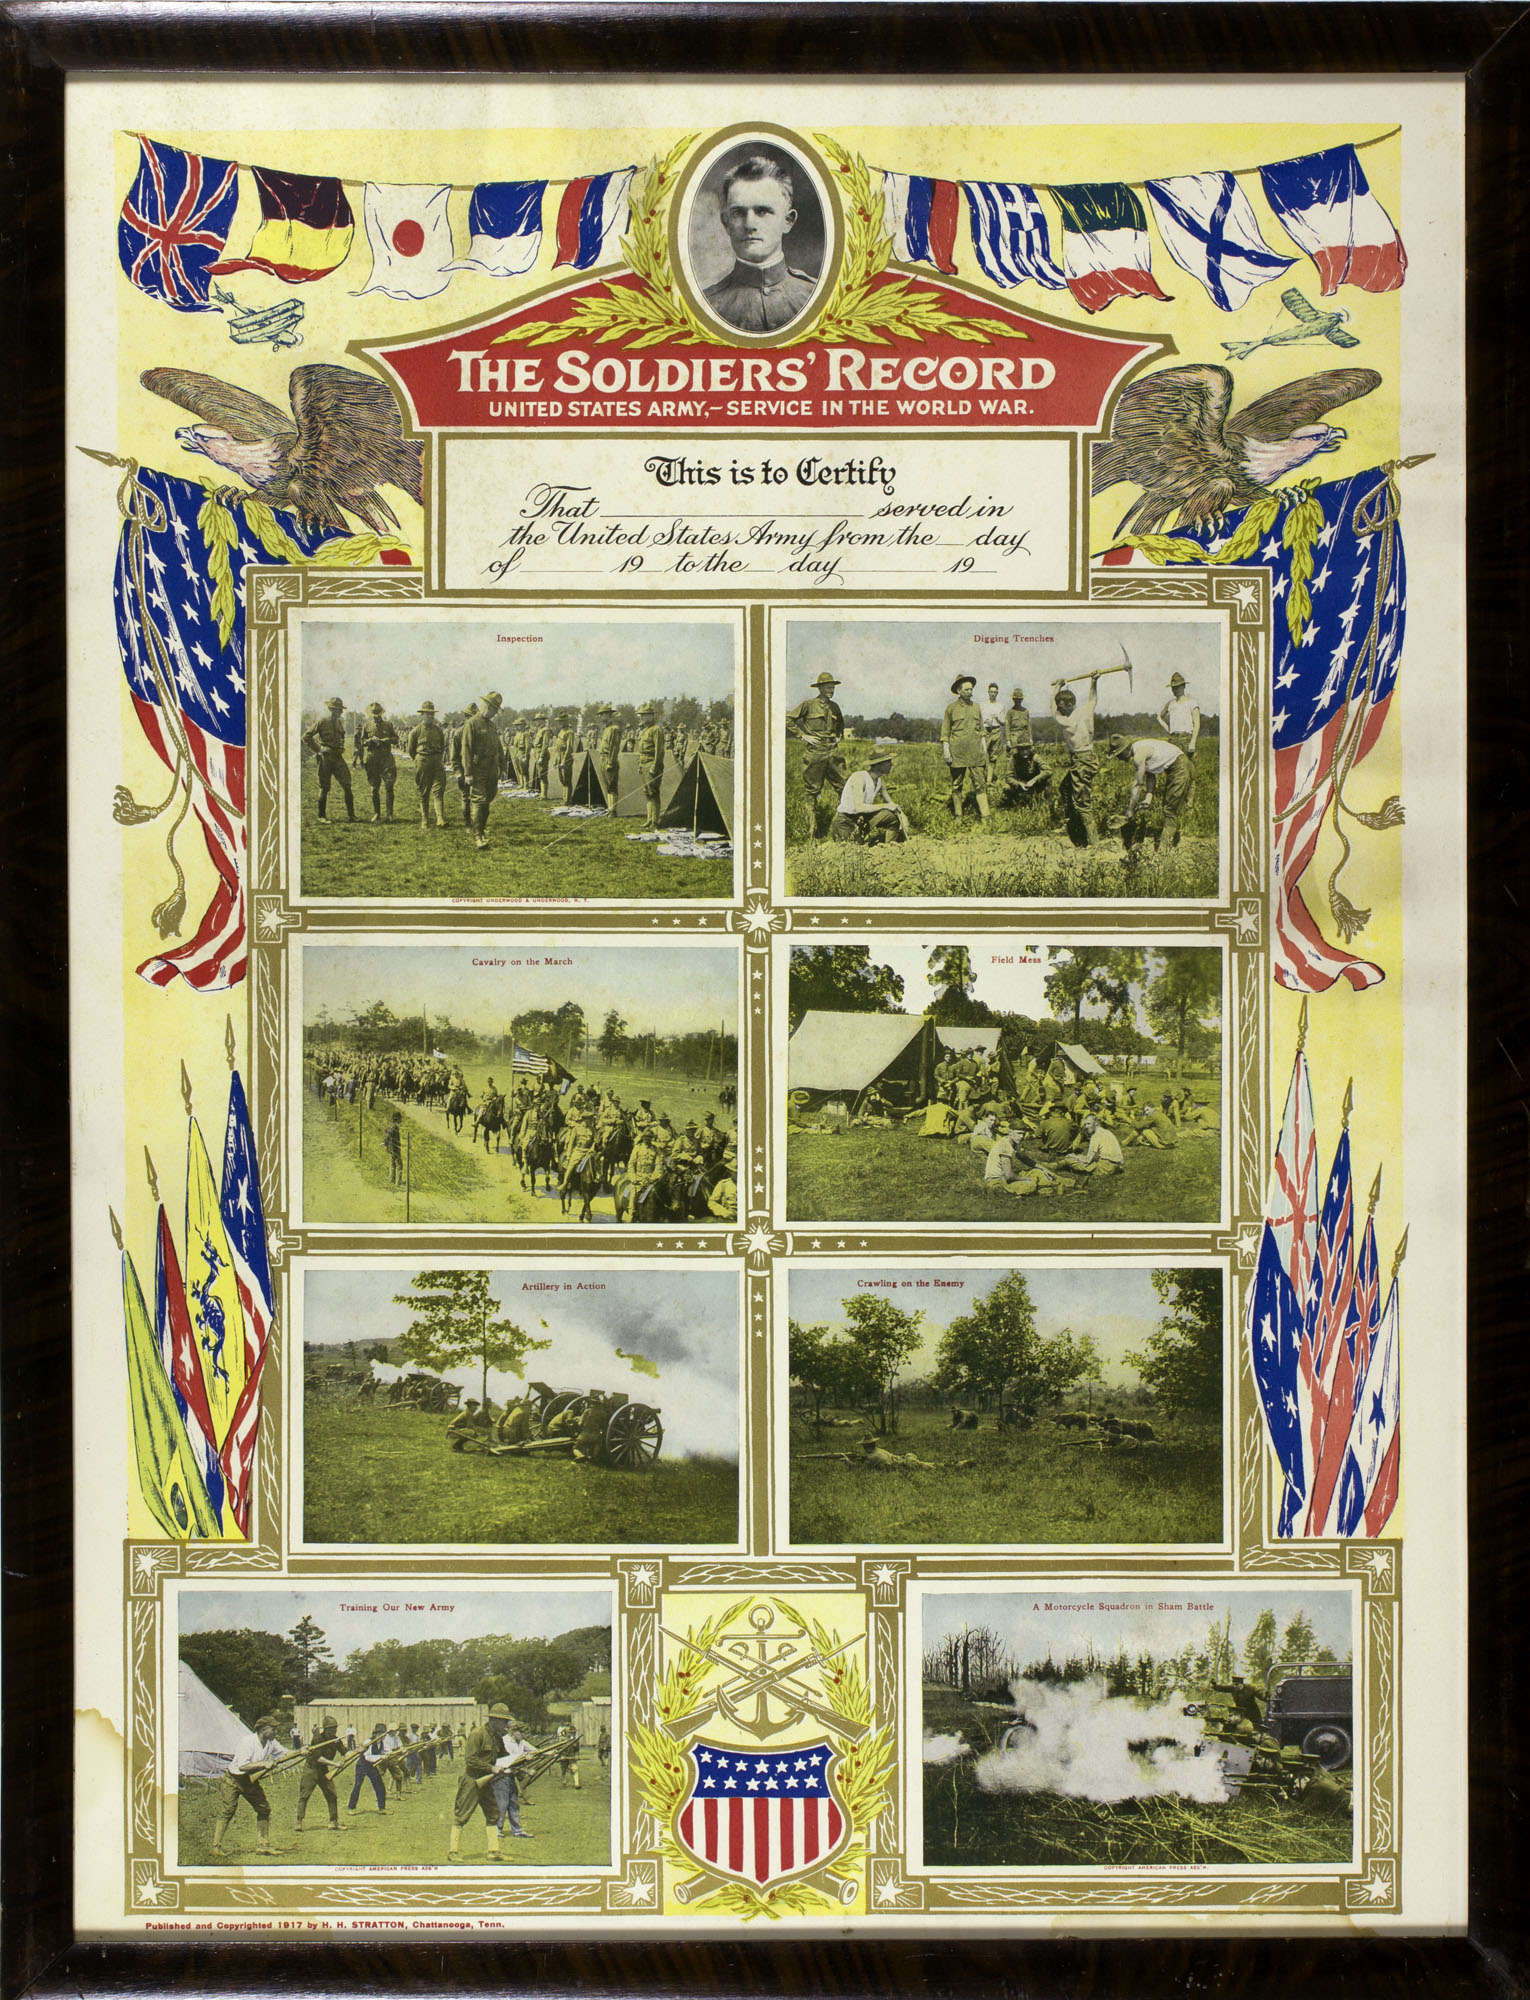 The Soldiers' Record (Chattanooga, TN, 1917). Offset color lithograph.